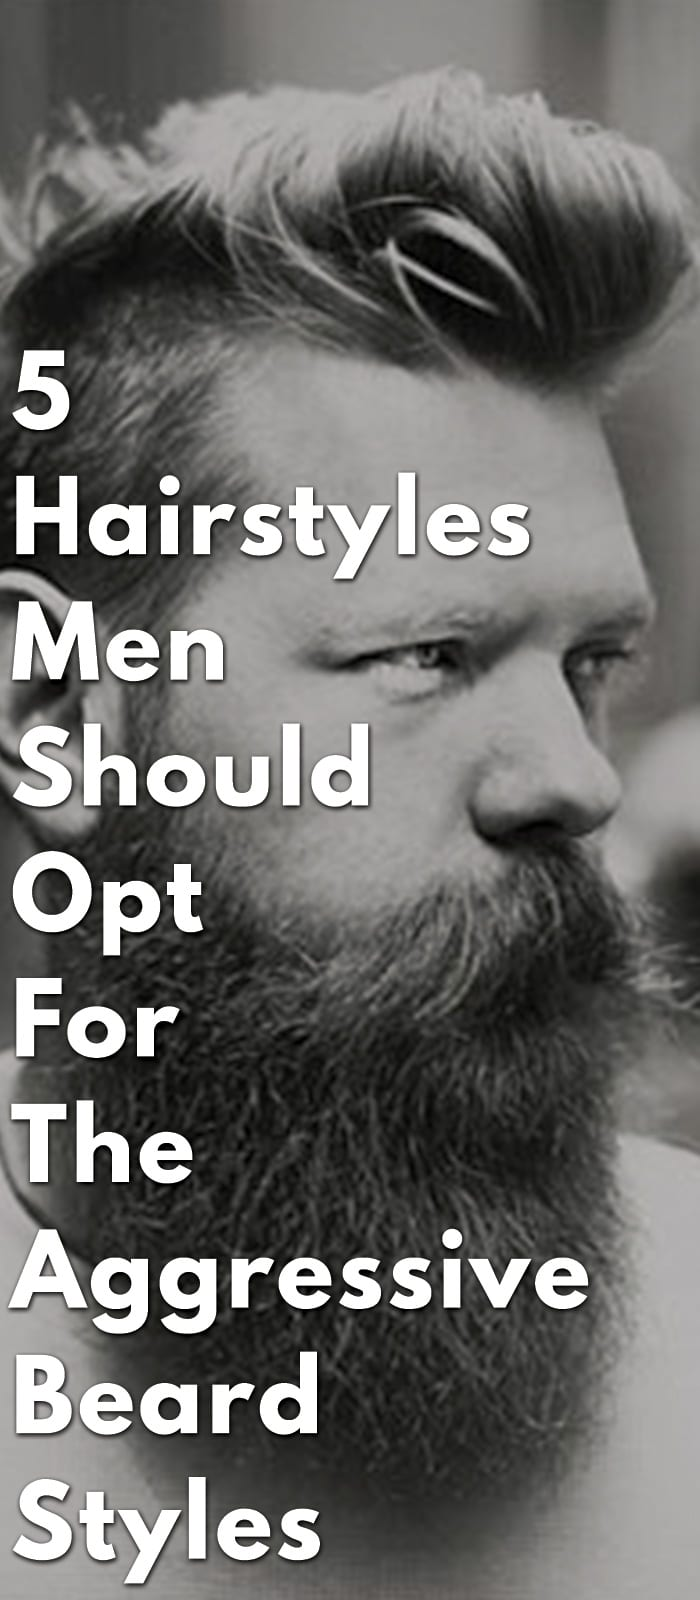 5-Hairstyles-Men-Should-Opt-For-The-Aggressive-Beard-Styles.